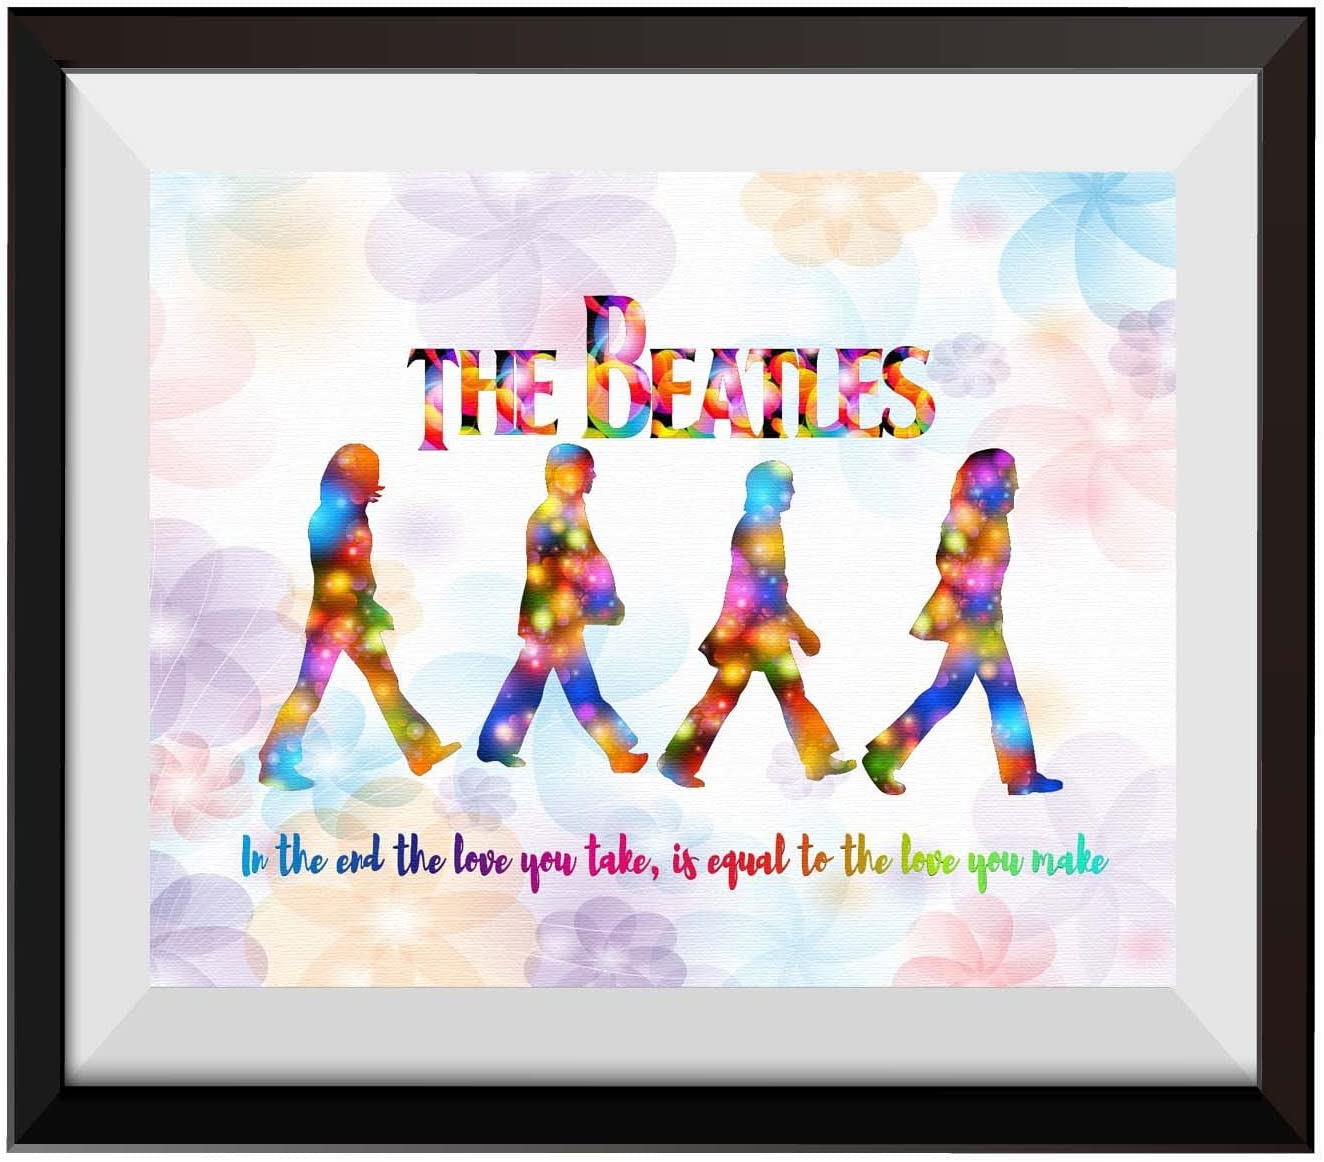 Uhomate The Beatles Poster Sale SALE% OFF Art Decor Wall Home C Industry No. 1